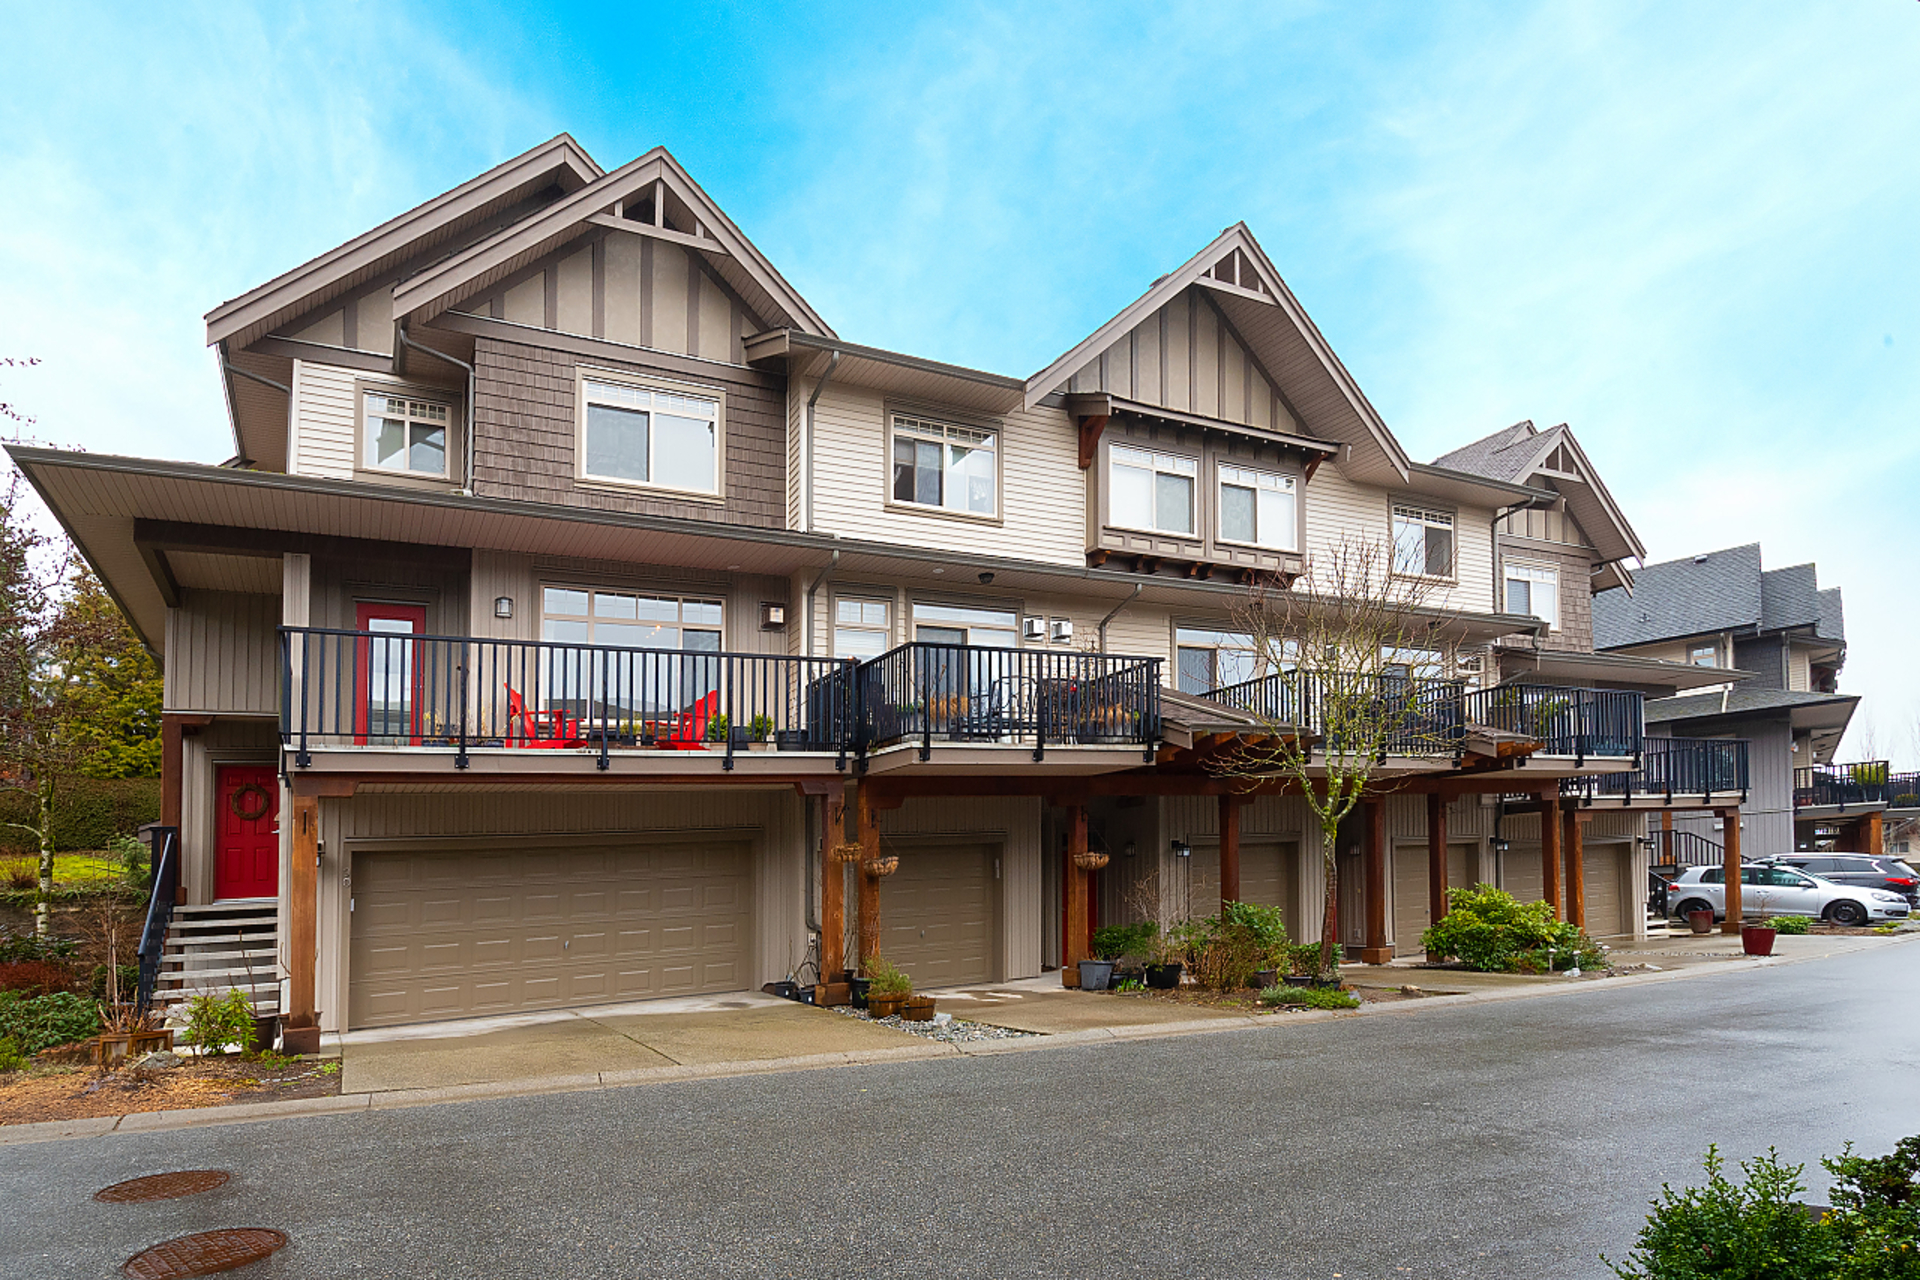 001 at 89 - 55 Hawthorn Drive, Heritage Woods PM, Port Moody